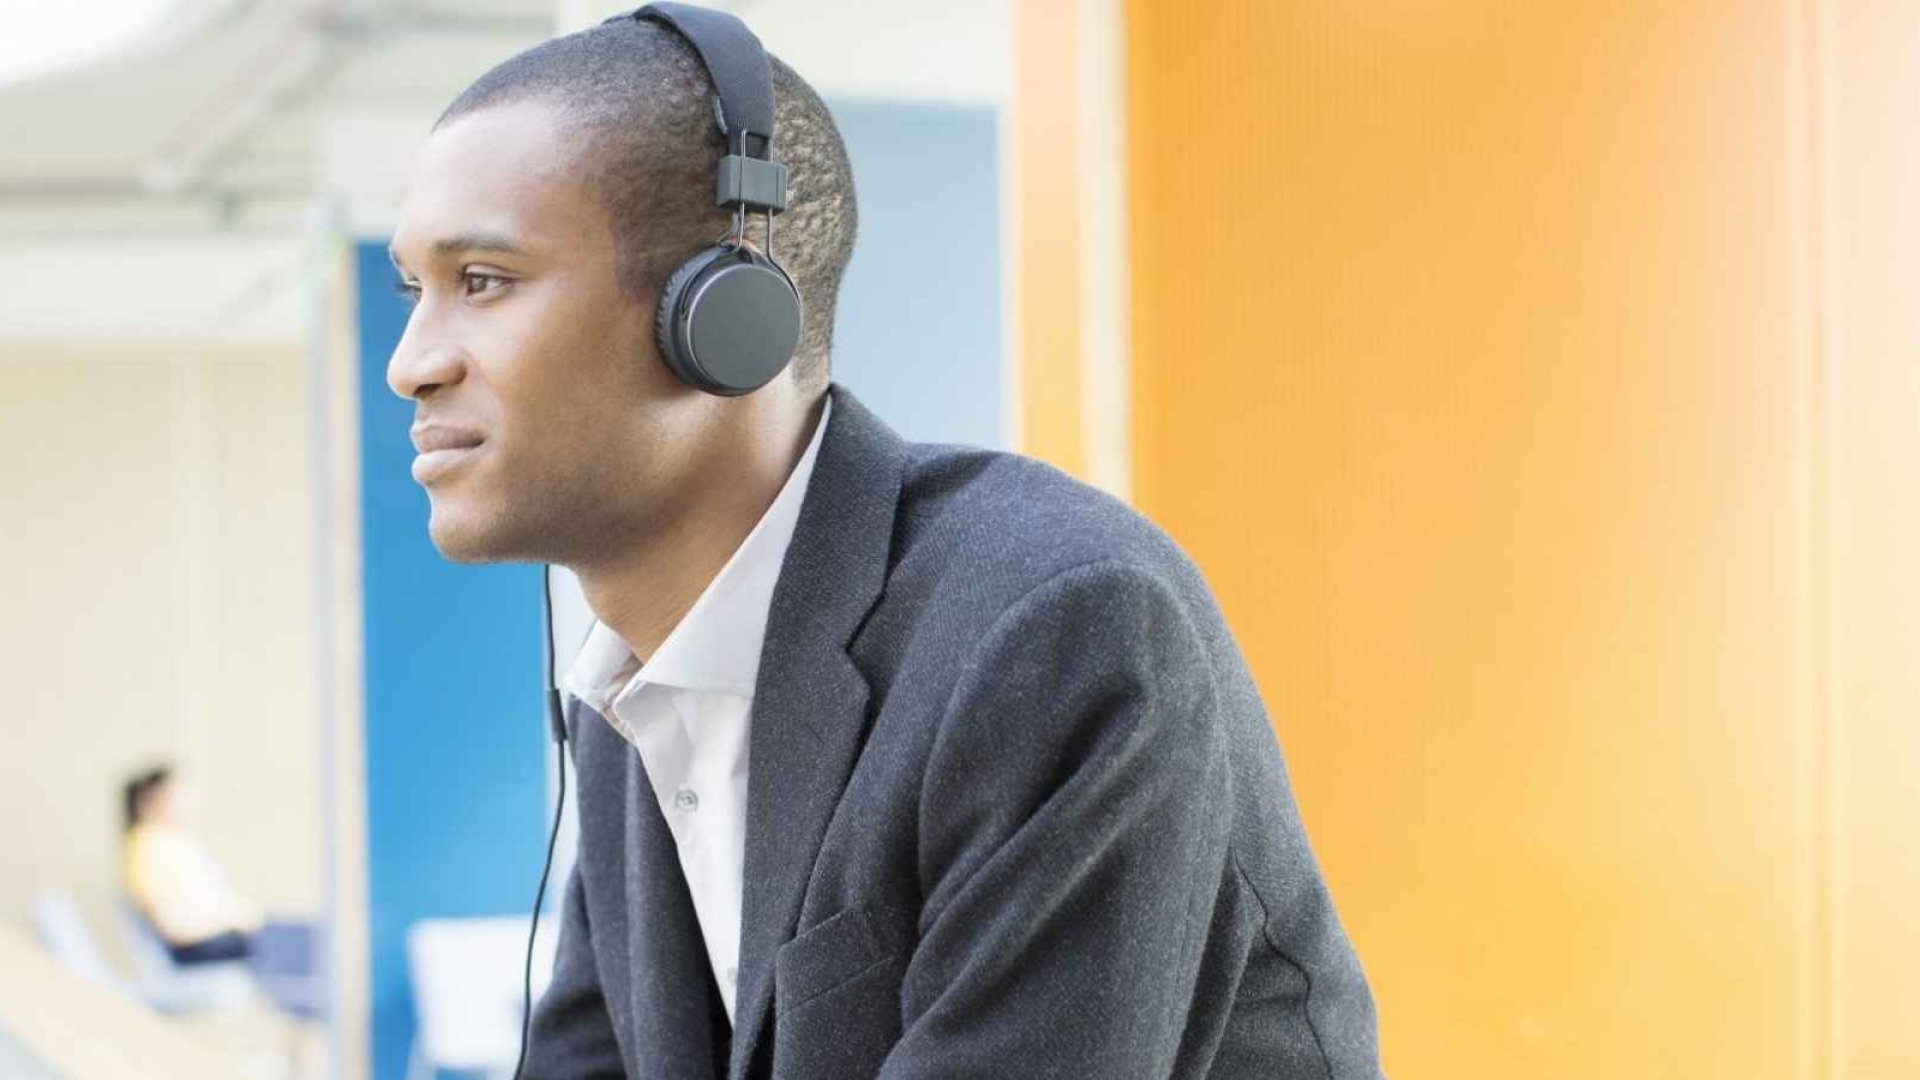 8 Podcasts That Can Improve Your Business Skills and Make You Smarter